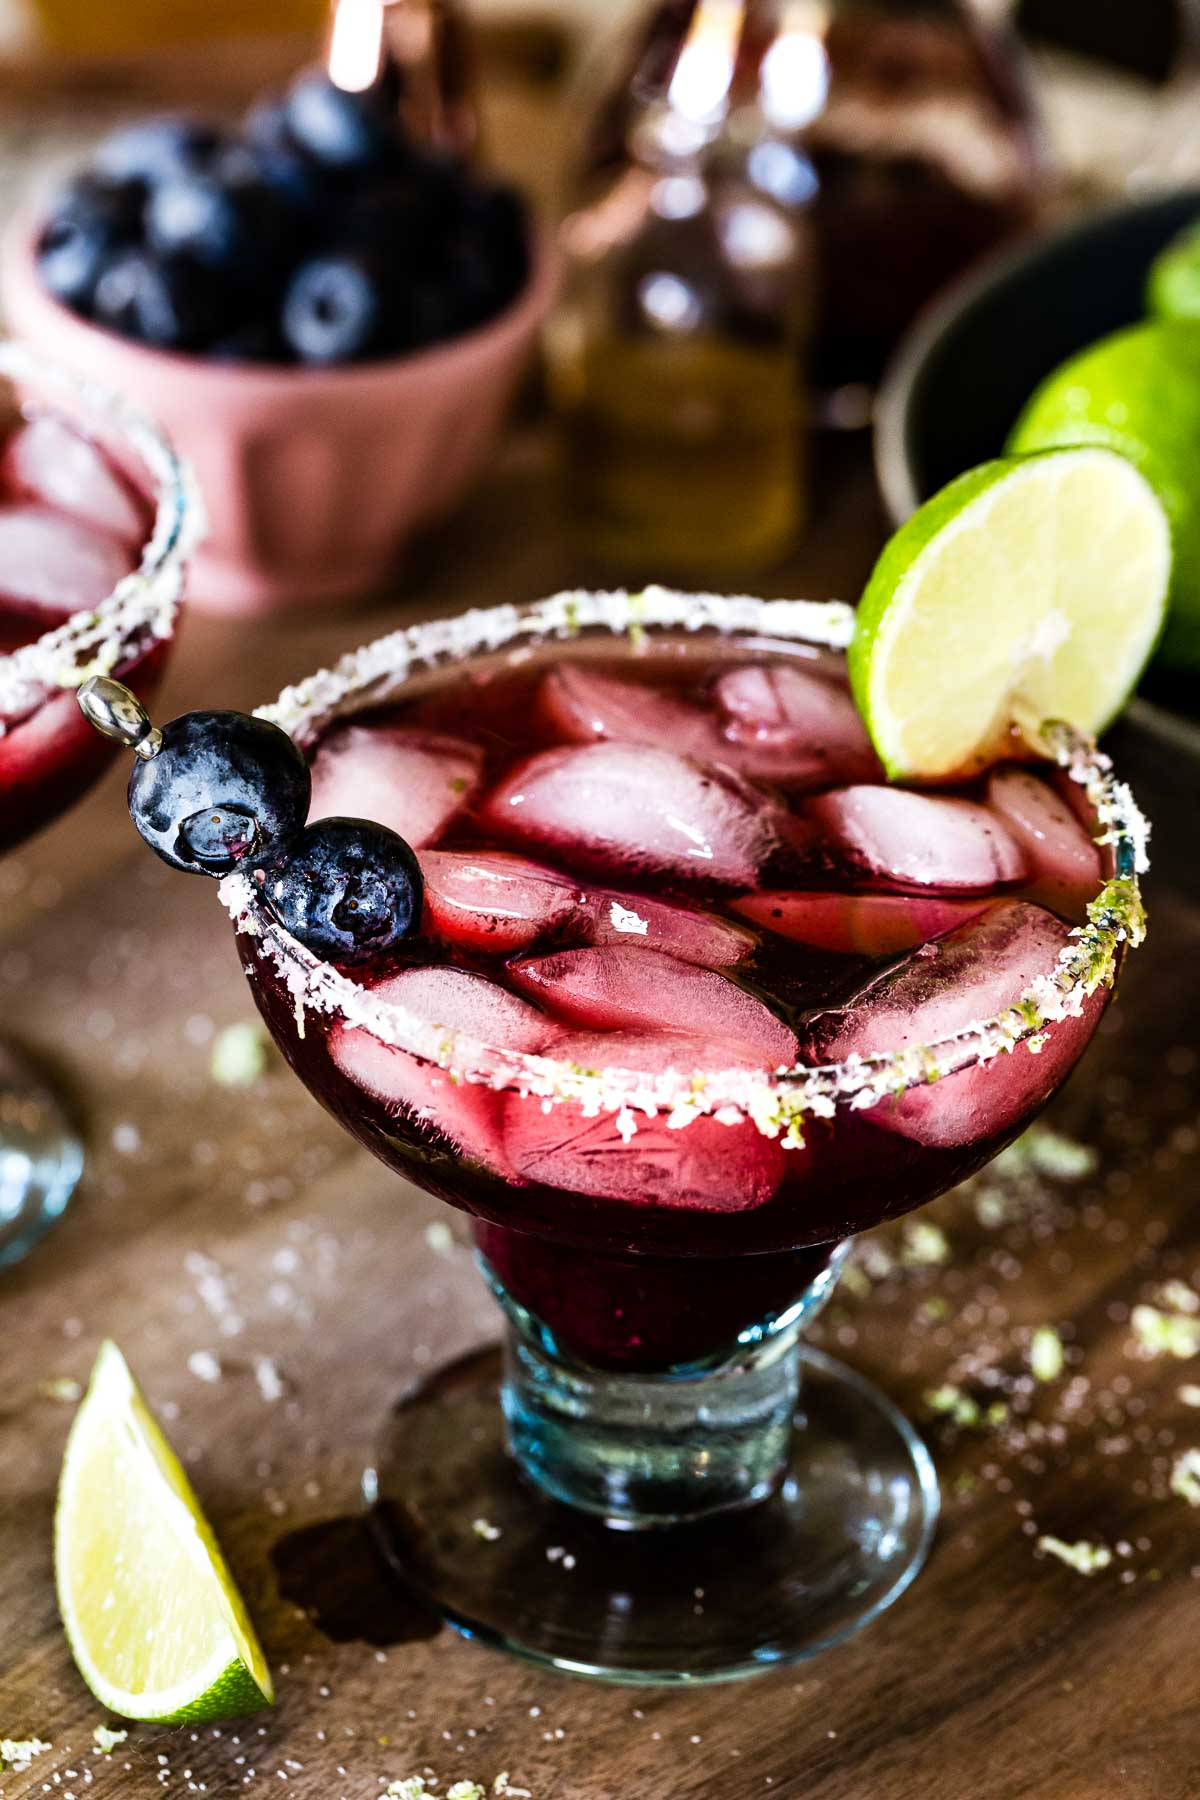 Blueberry Margarita garnished with blueberries and lime